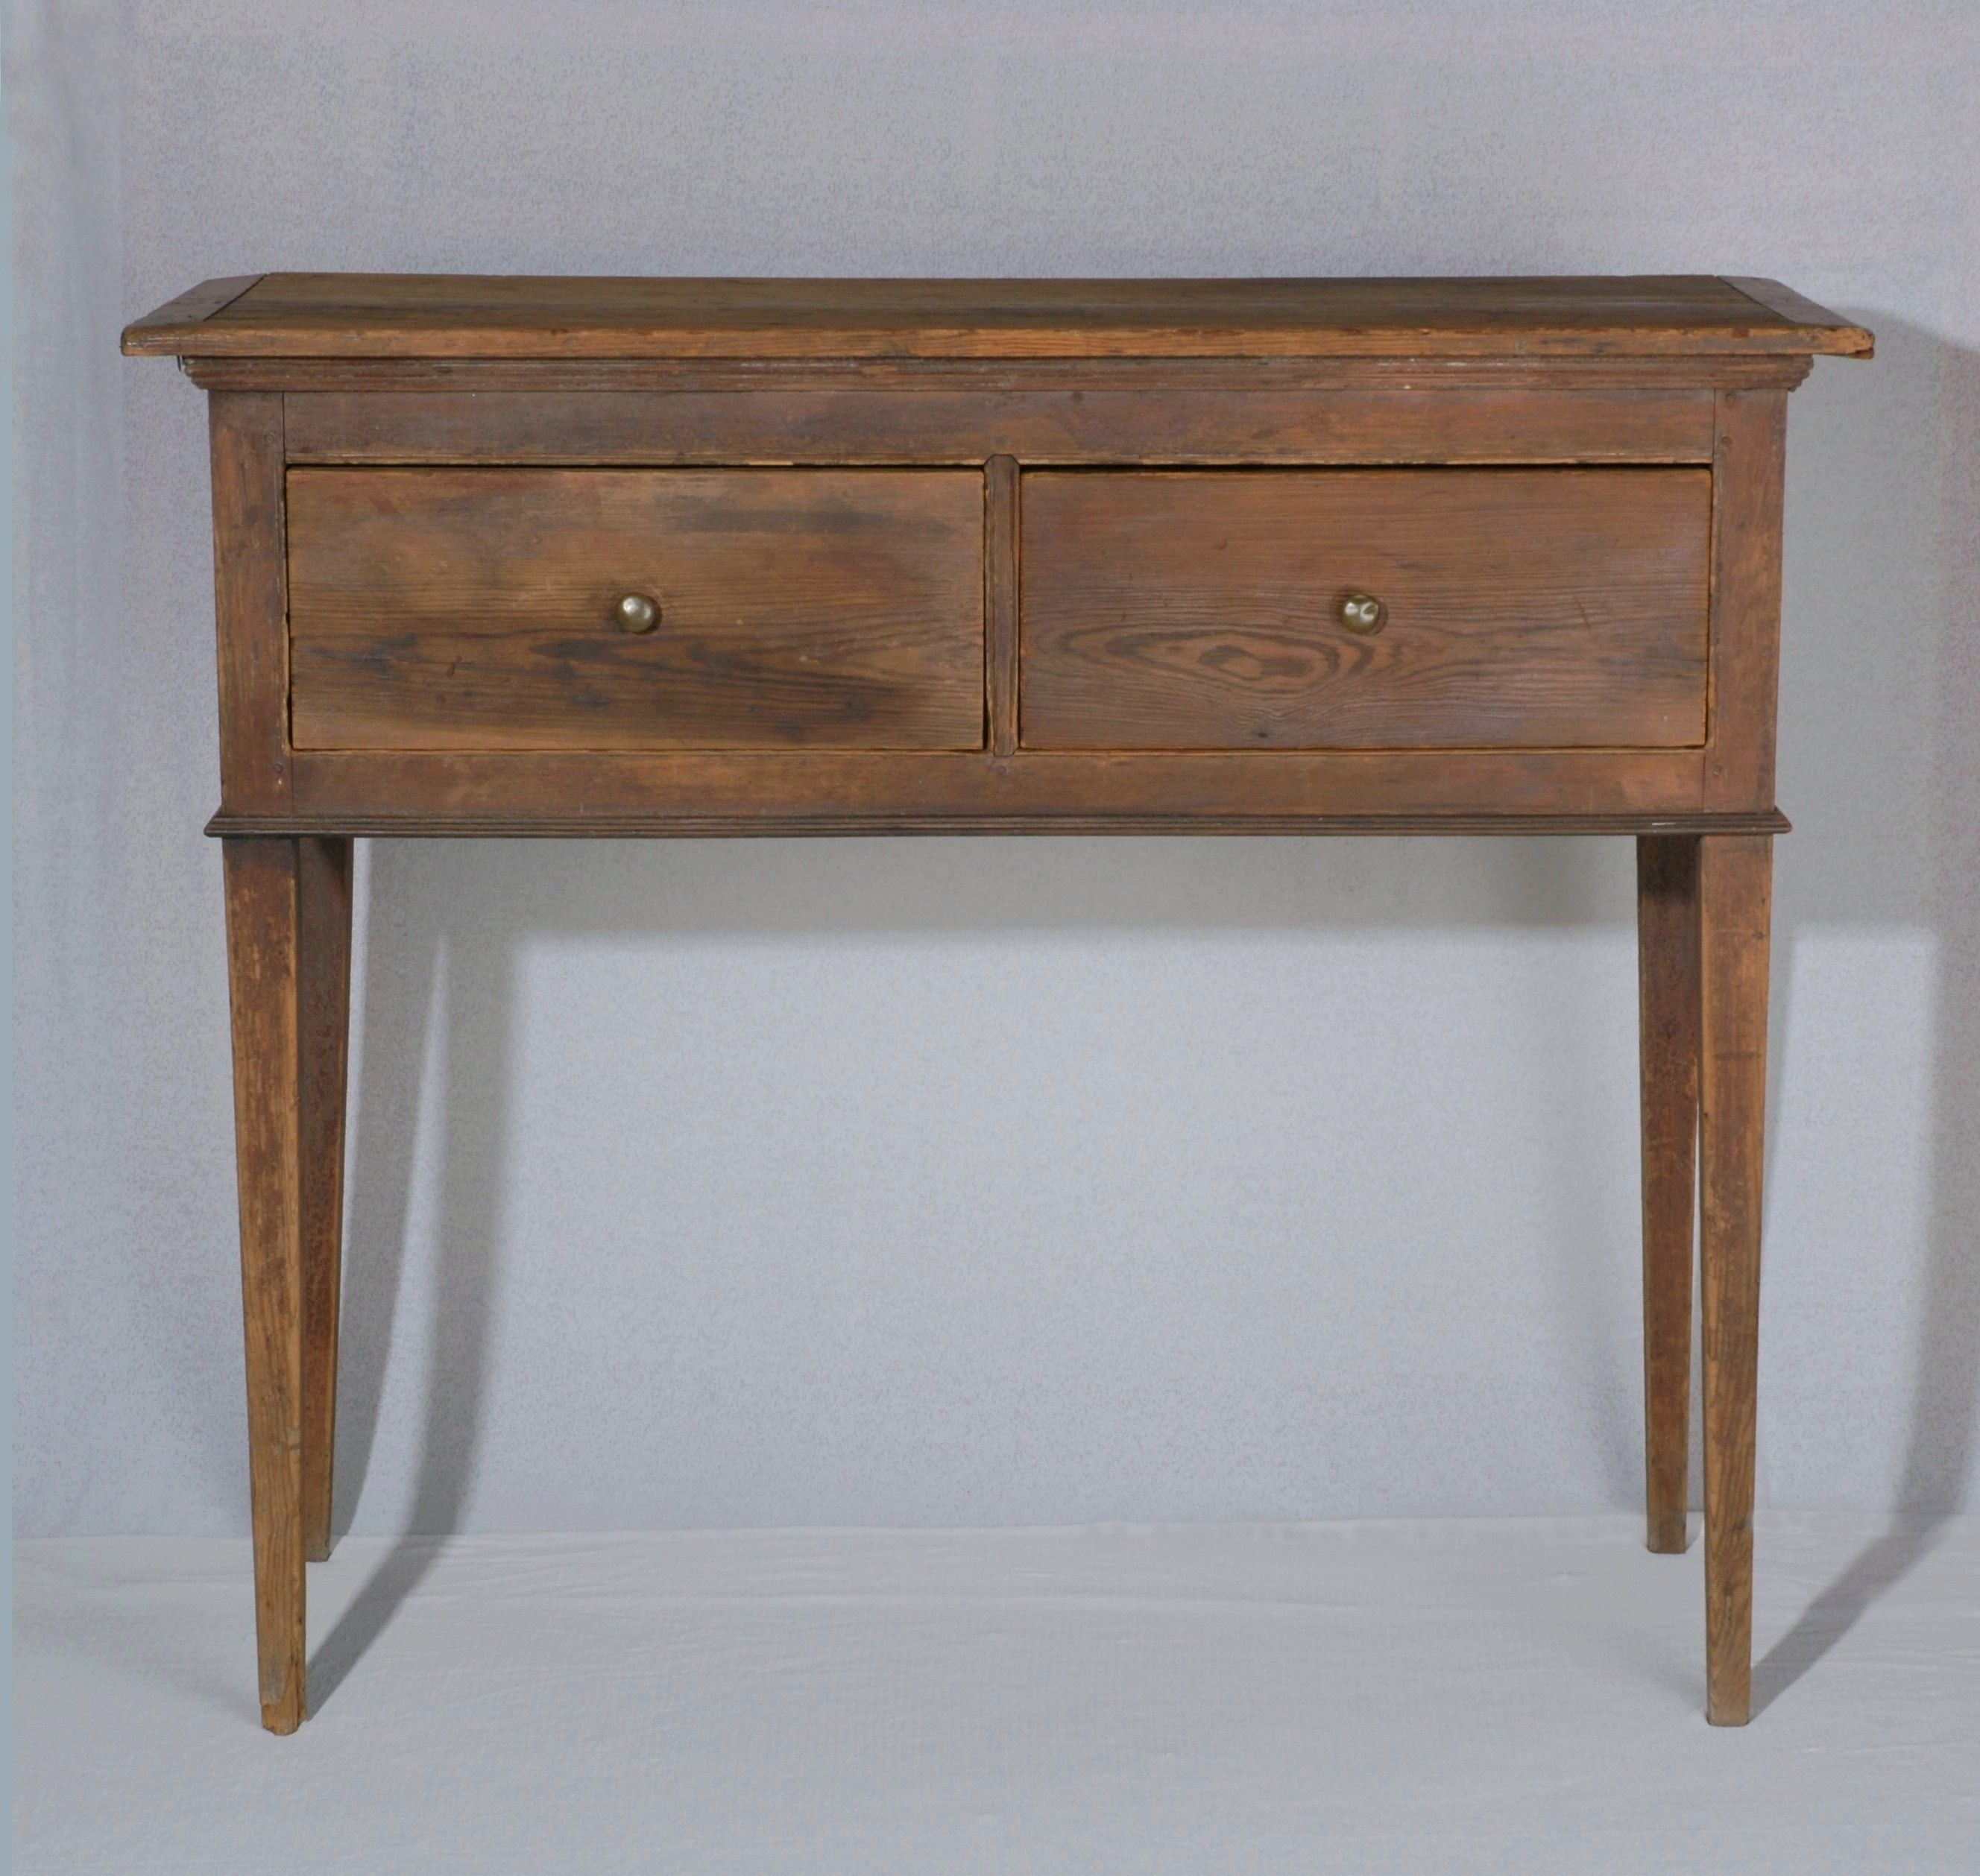 North Carolina Huntboard Yellow Pine With Brass Pulls Consiting Of Two Drawers Central North Carolina Ci Southern Furniture Carolina Furniture Nc Furniture